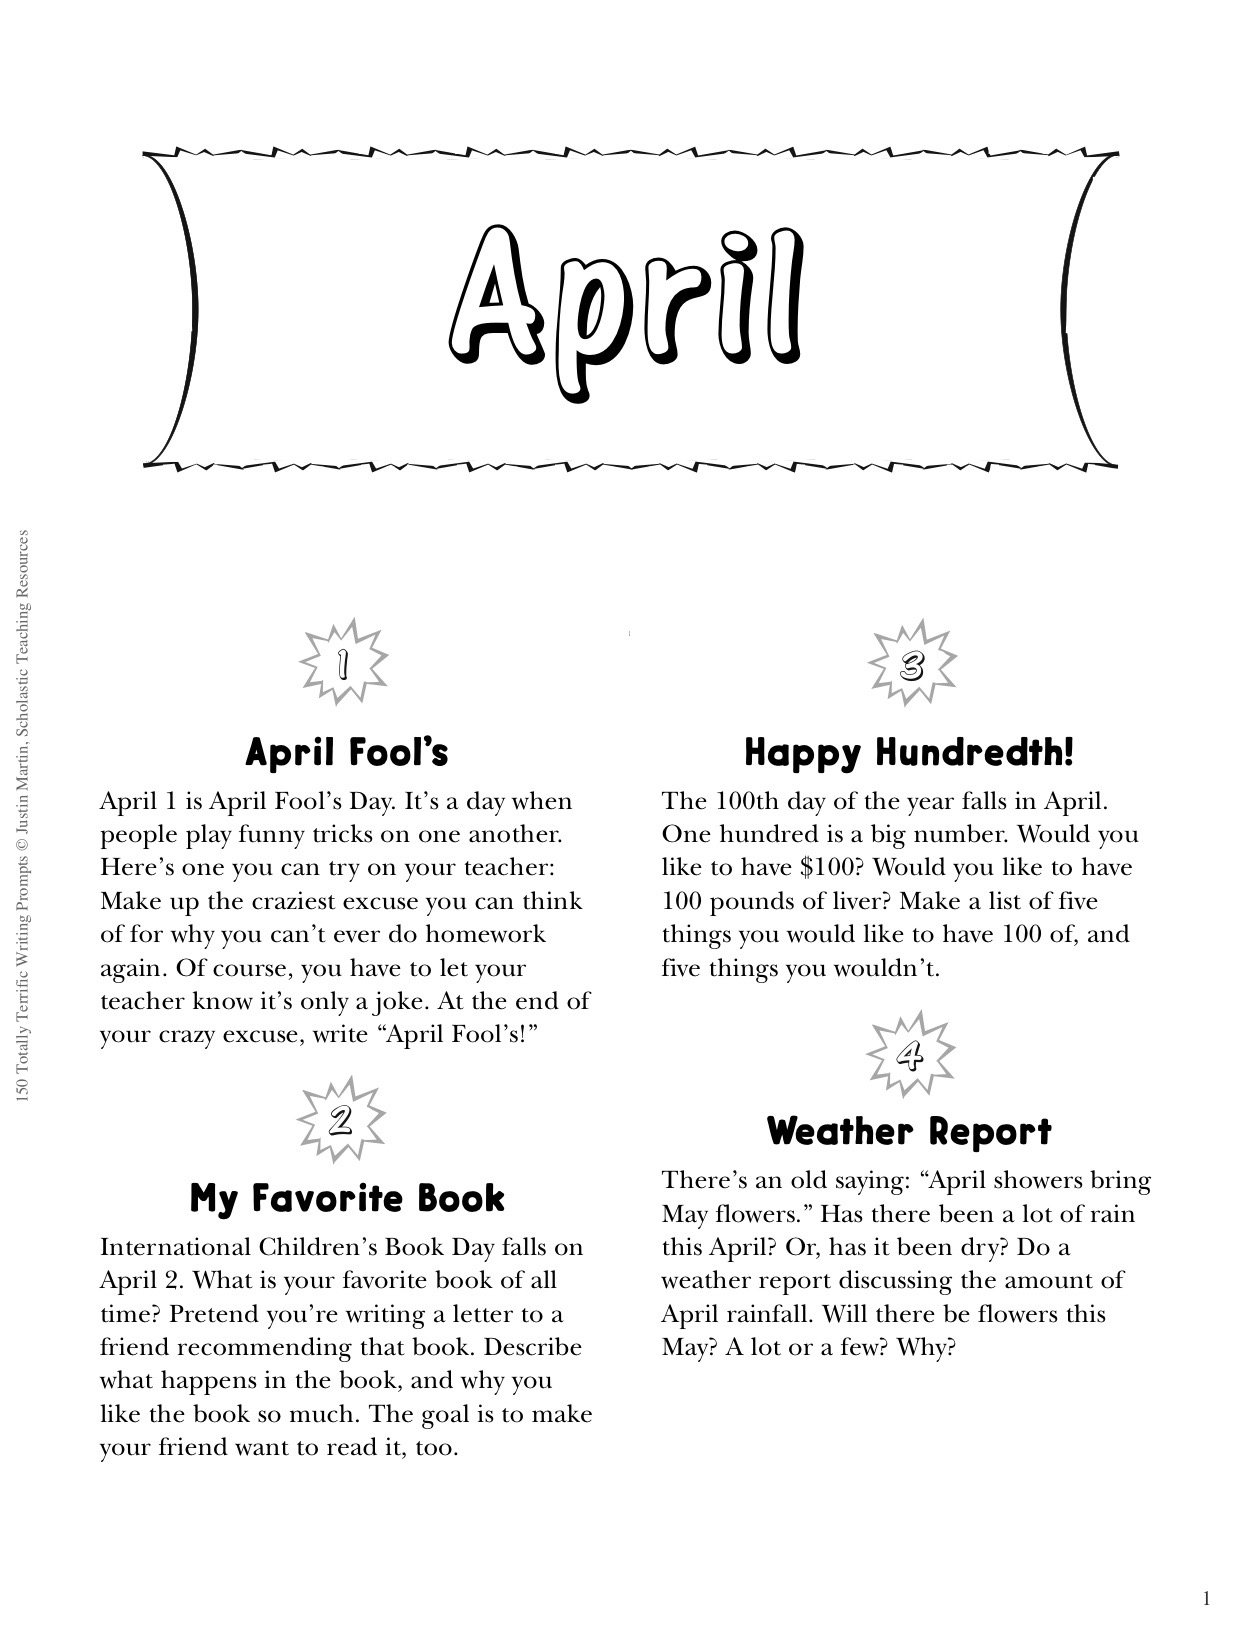 Free Printable Prompts To Spring Writing To Life